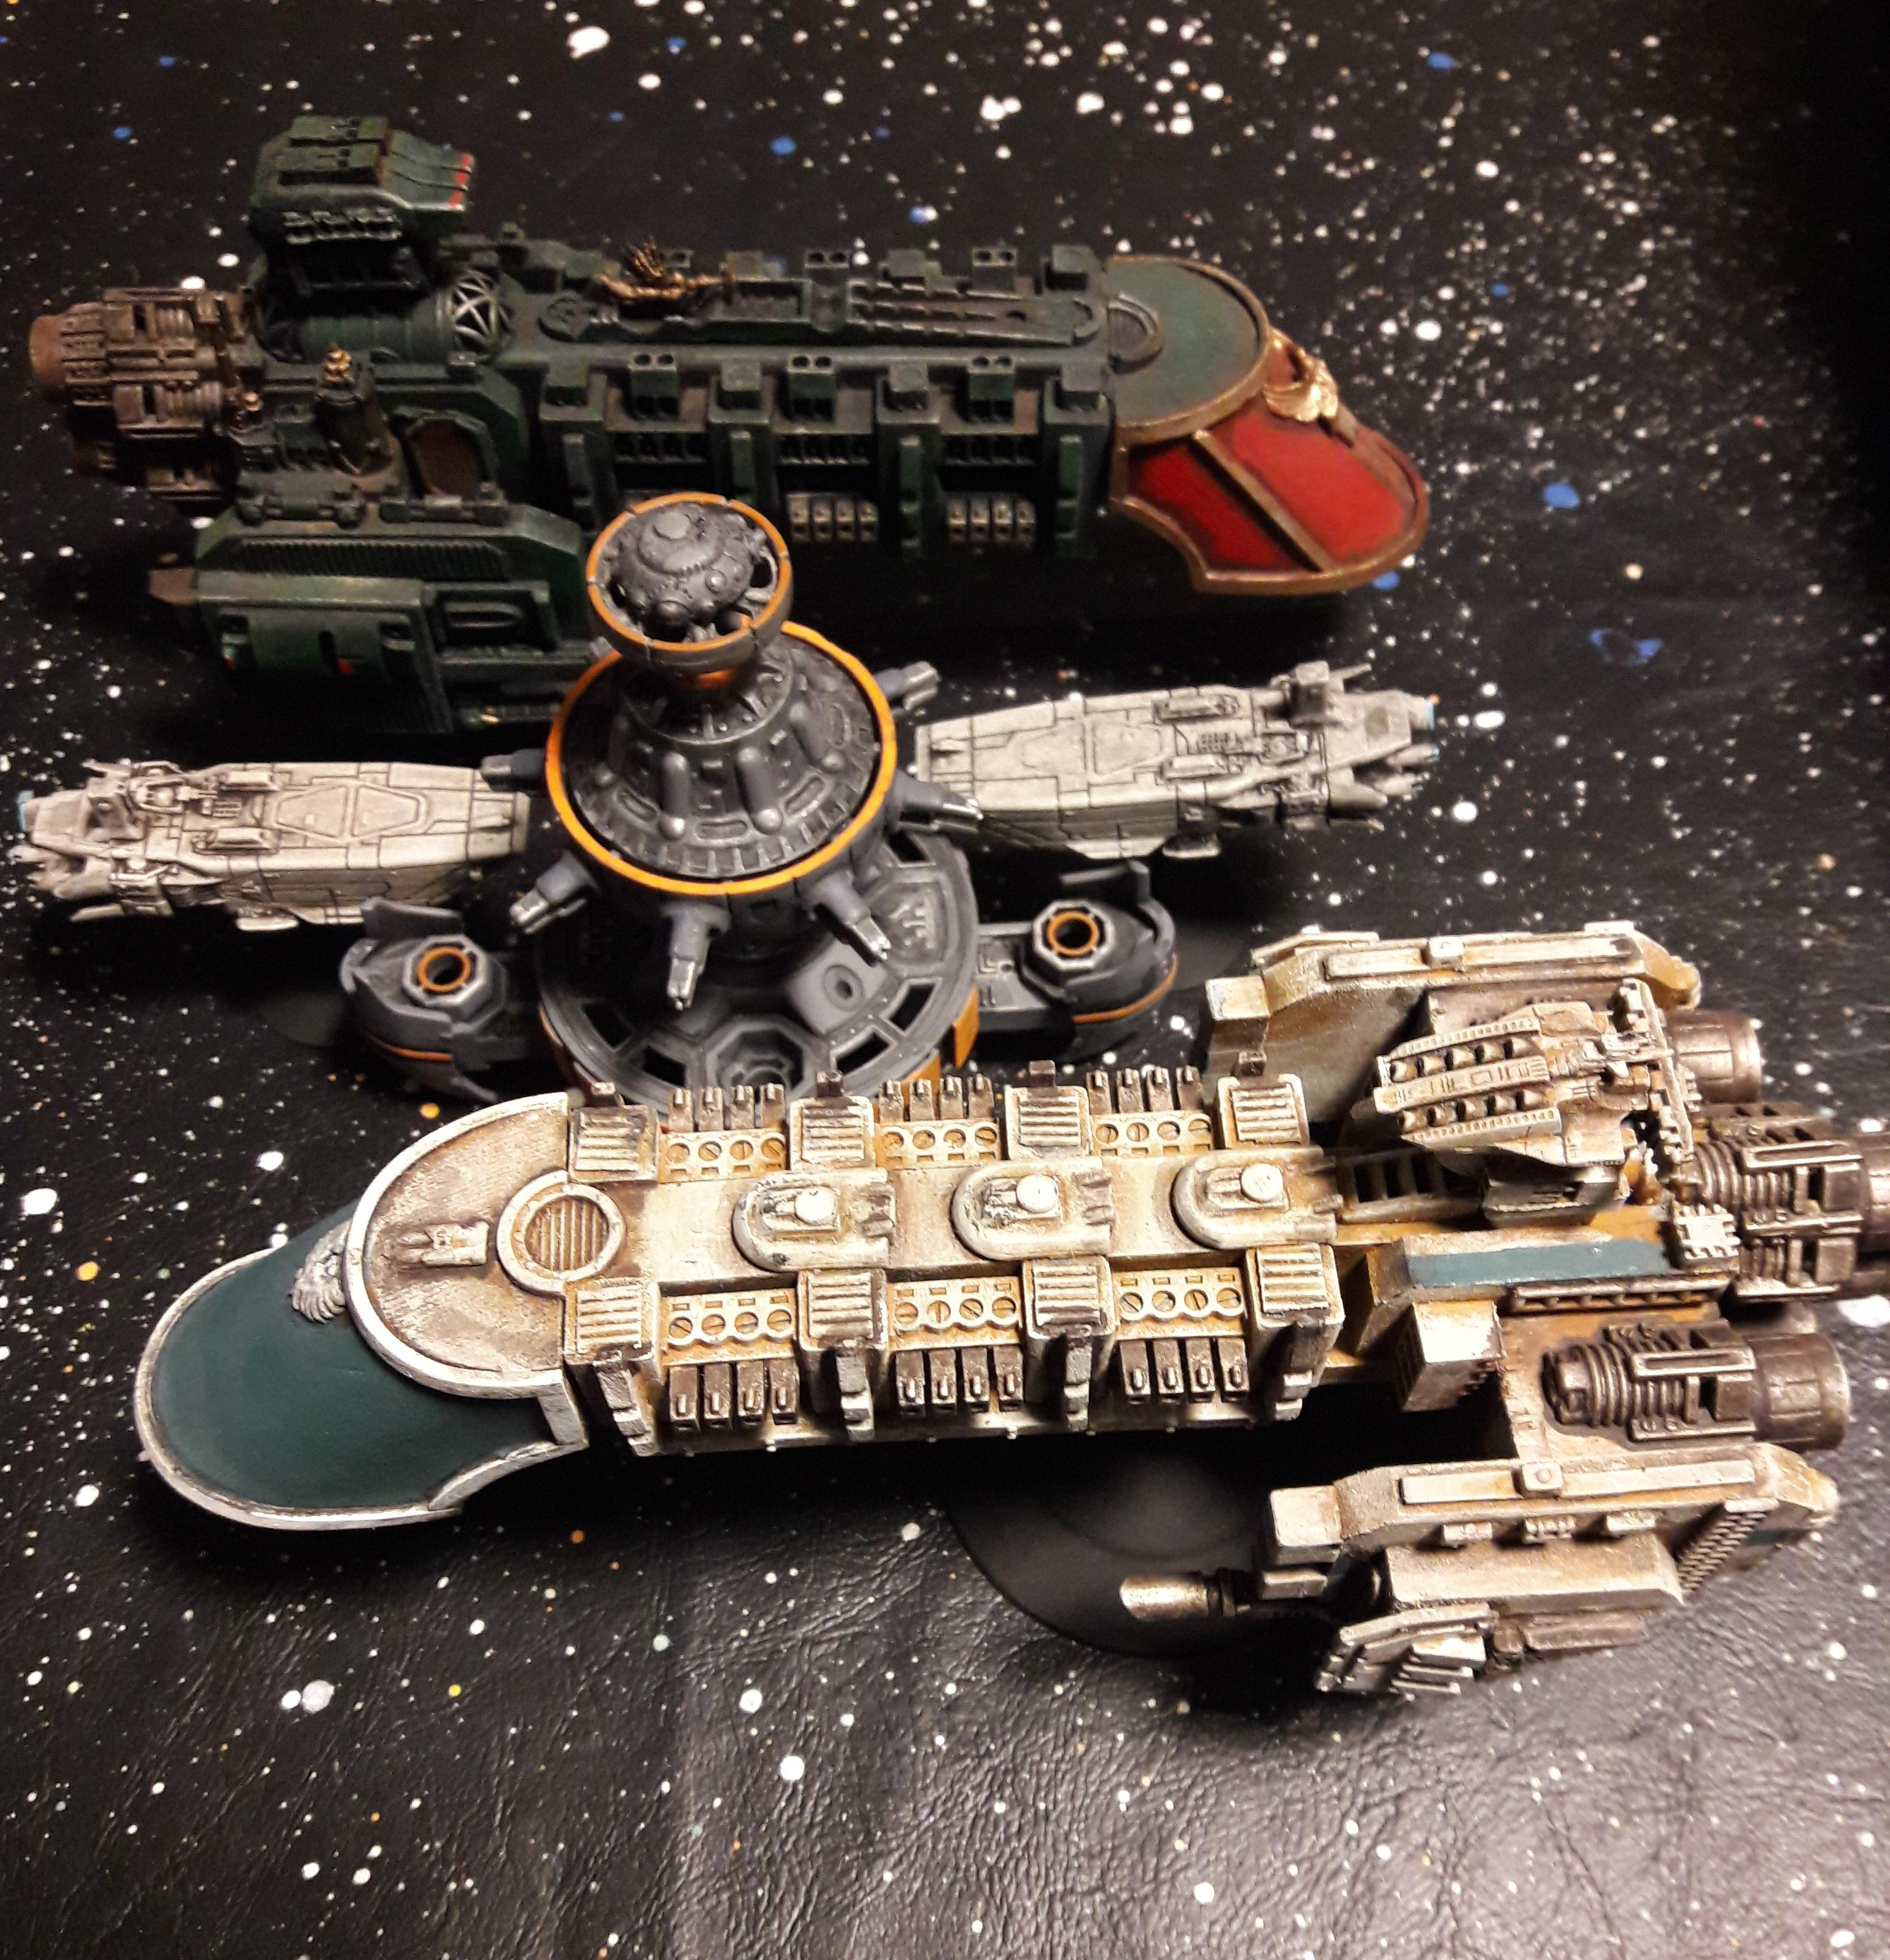 Battlefleet Gothic, Large Scale, Rpg, Space Station